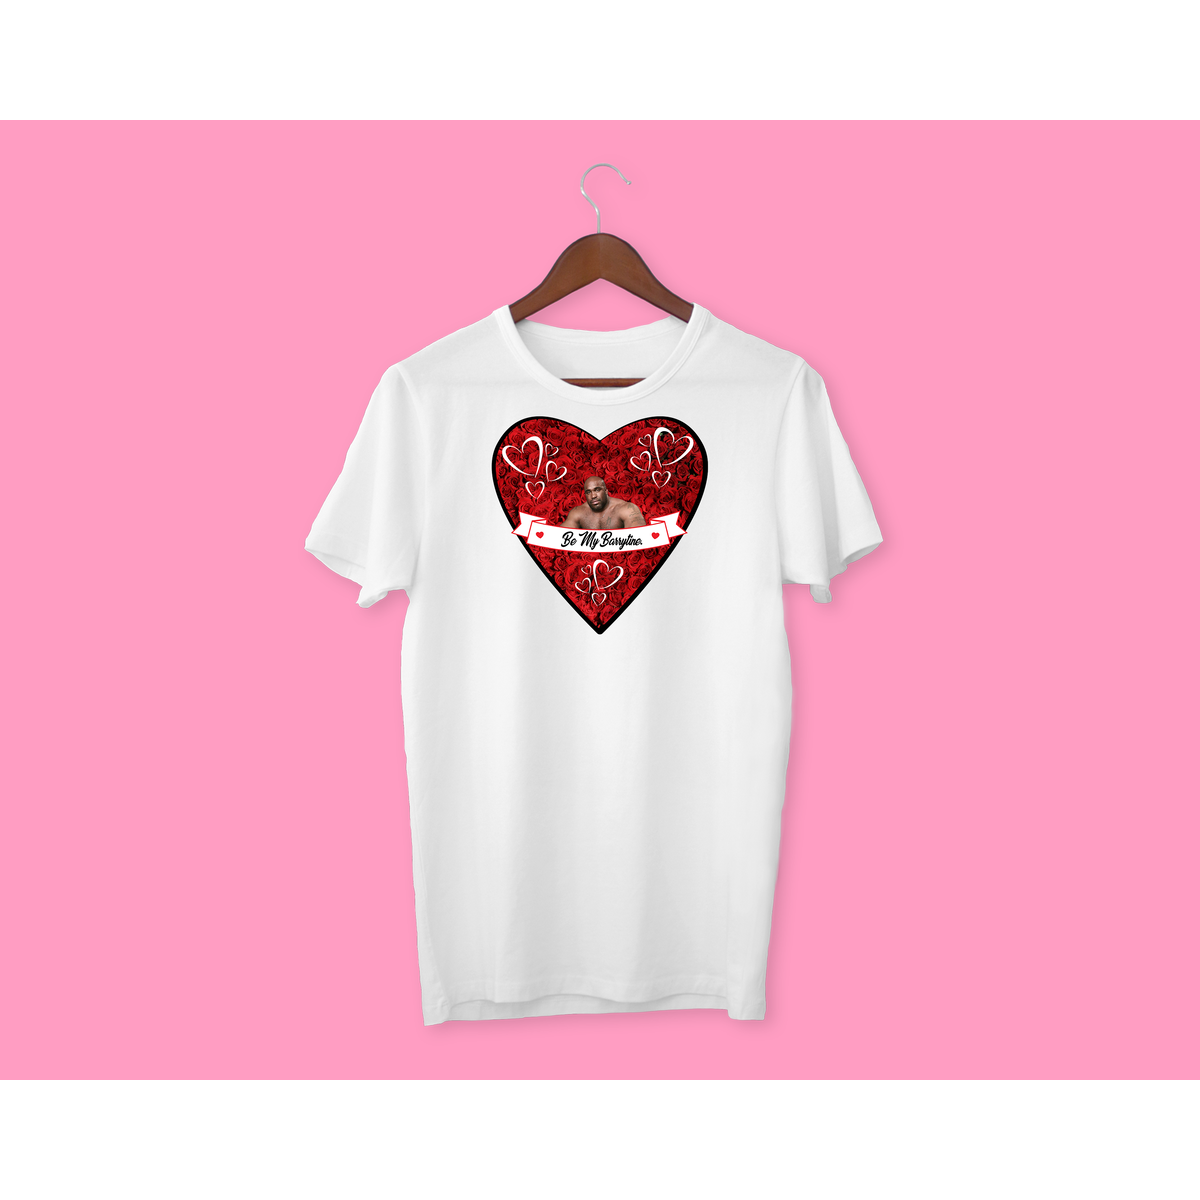 BE MY BARRYTINE T-SHIRT - VALENTINE'S DAY - FUNNY GIFT - BARRY WOOD - LOVE - BE MY VALENTINE